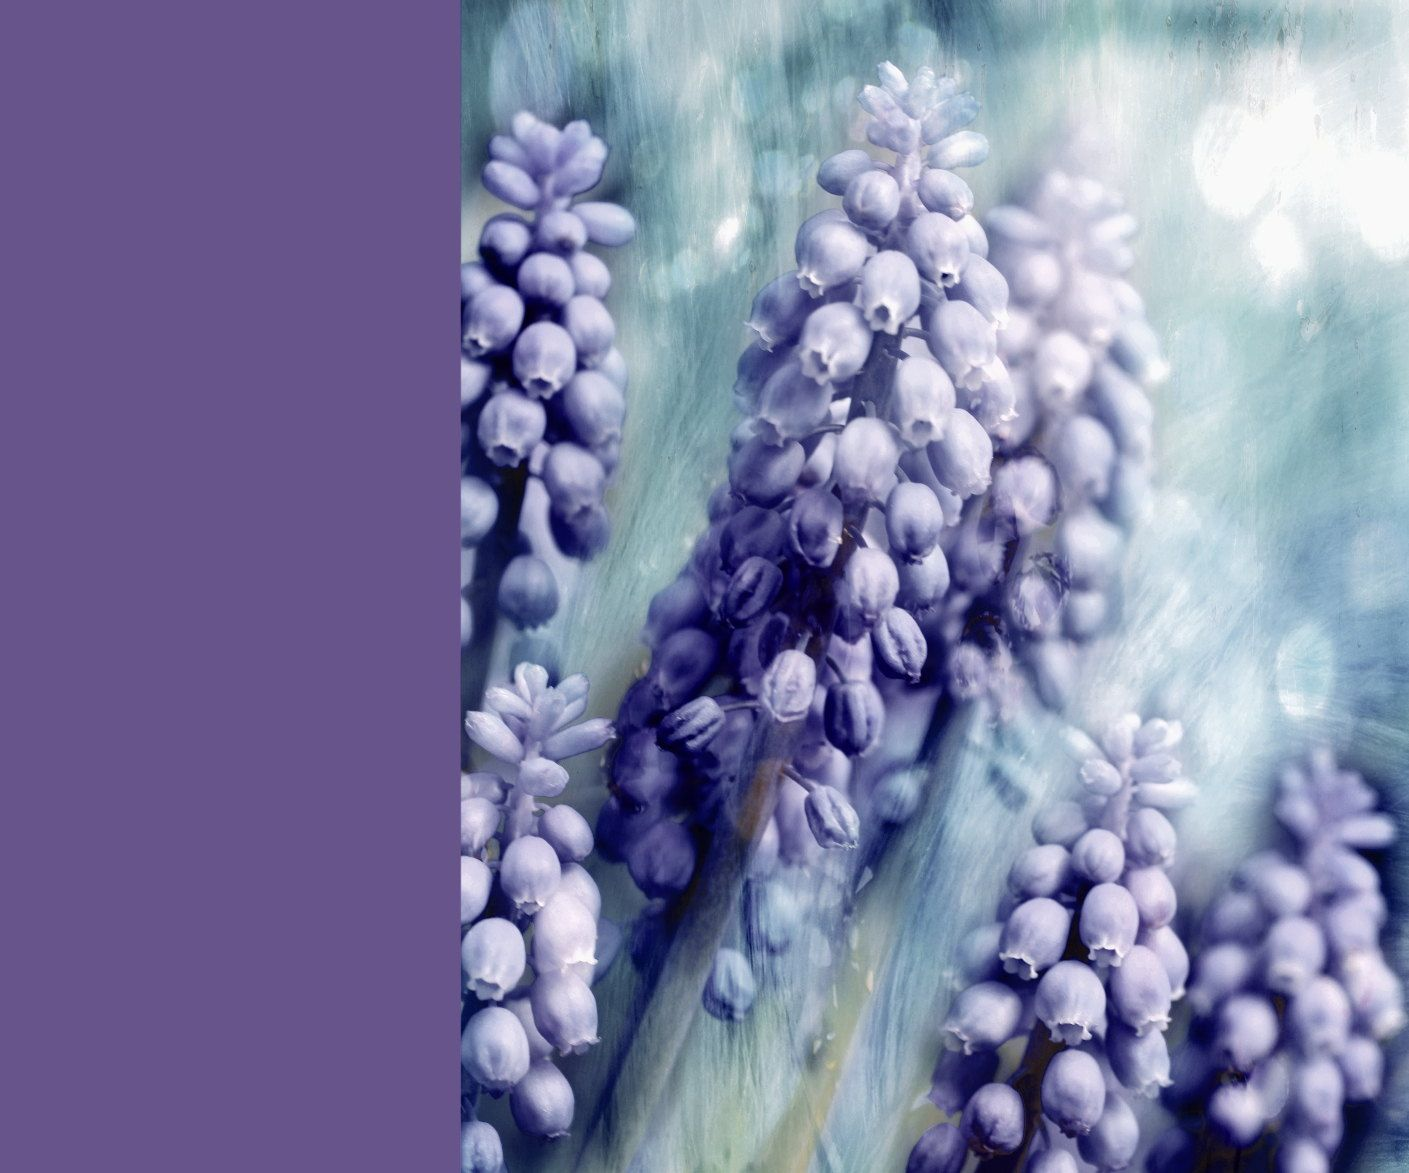 Lush Lavender by Anne Costello on 500px